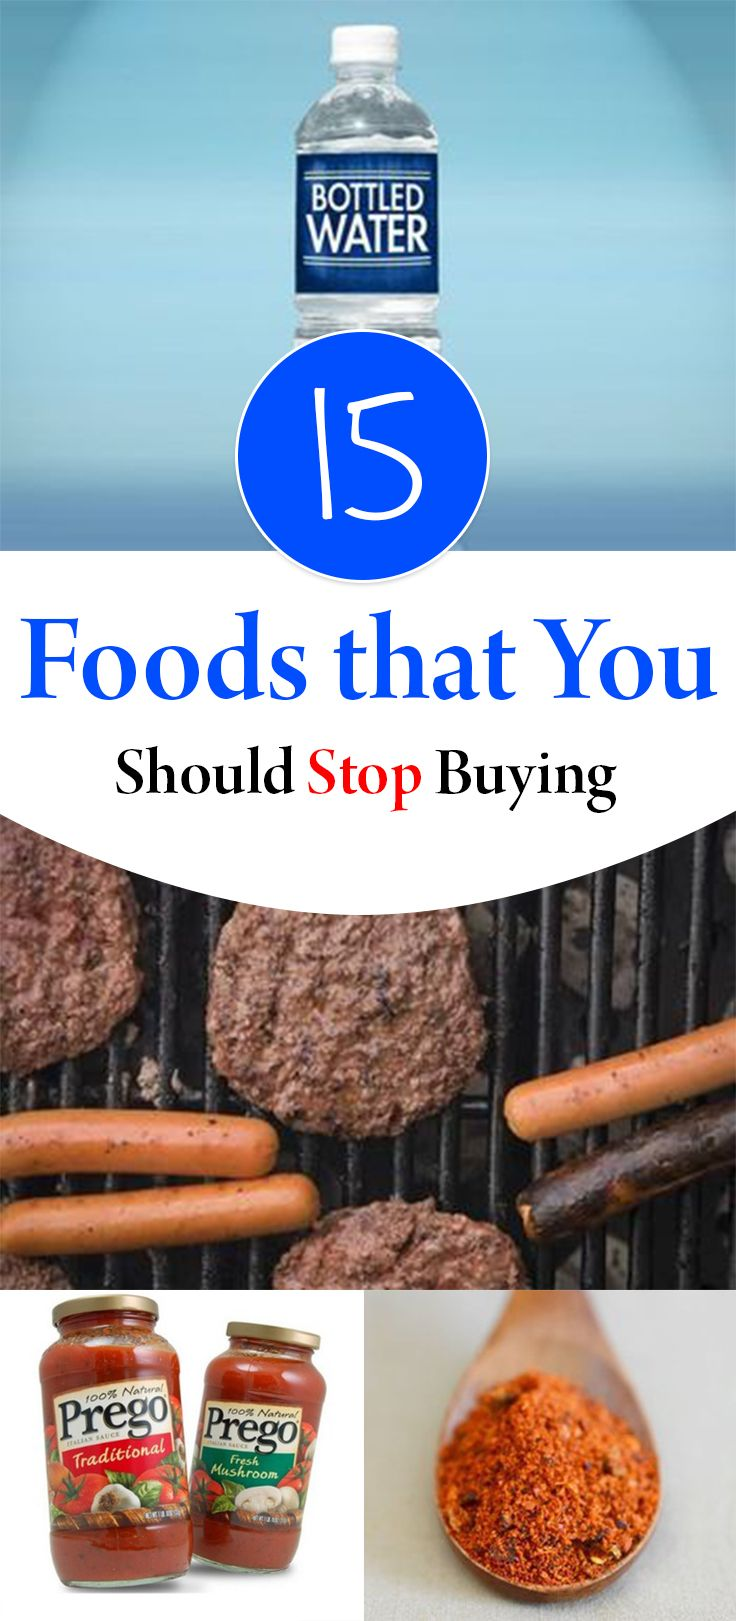 15 Foods that You Should Stop Buying - Wrapped in Rust